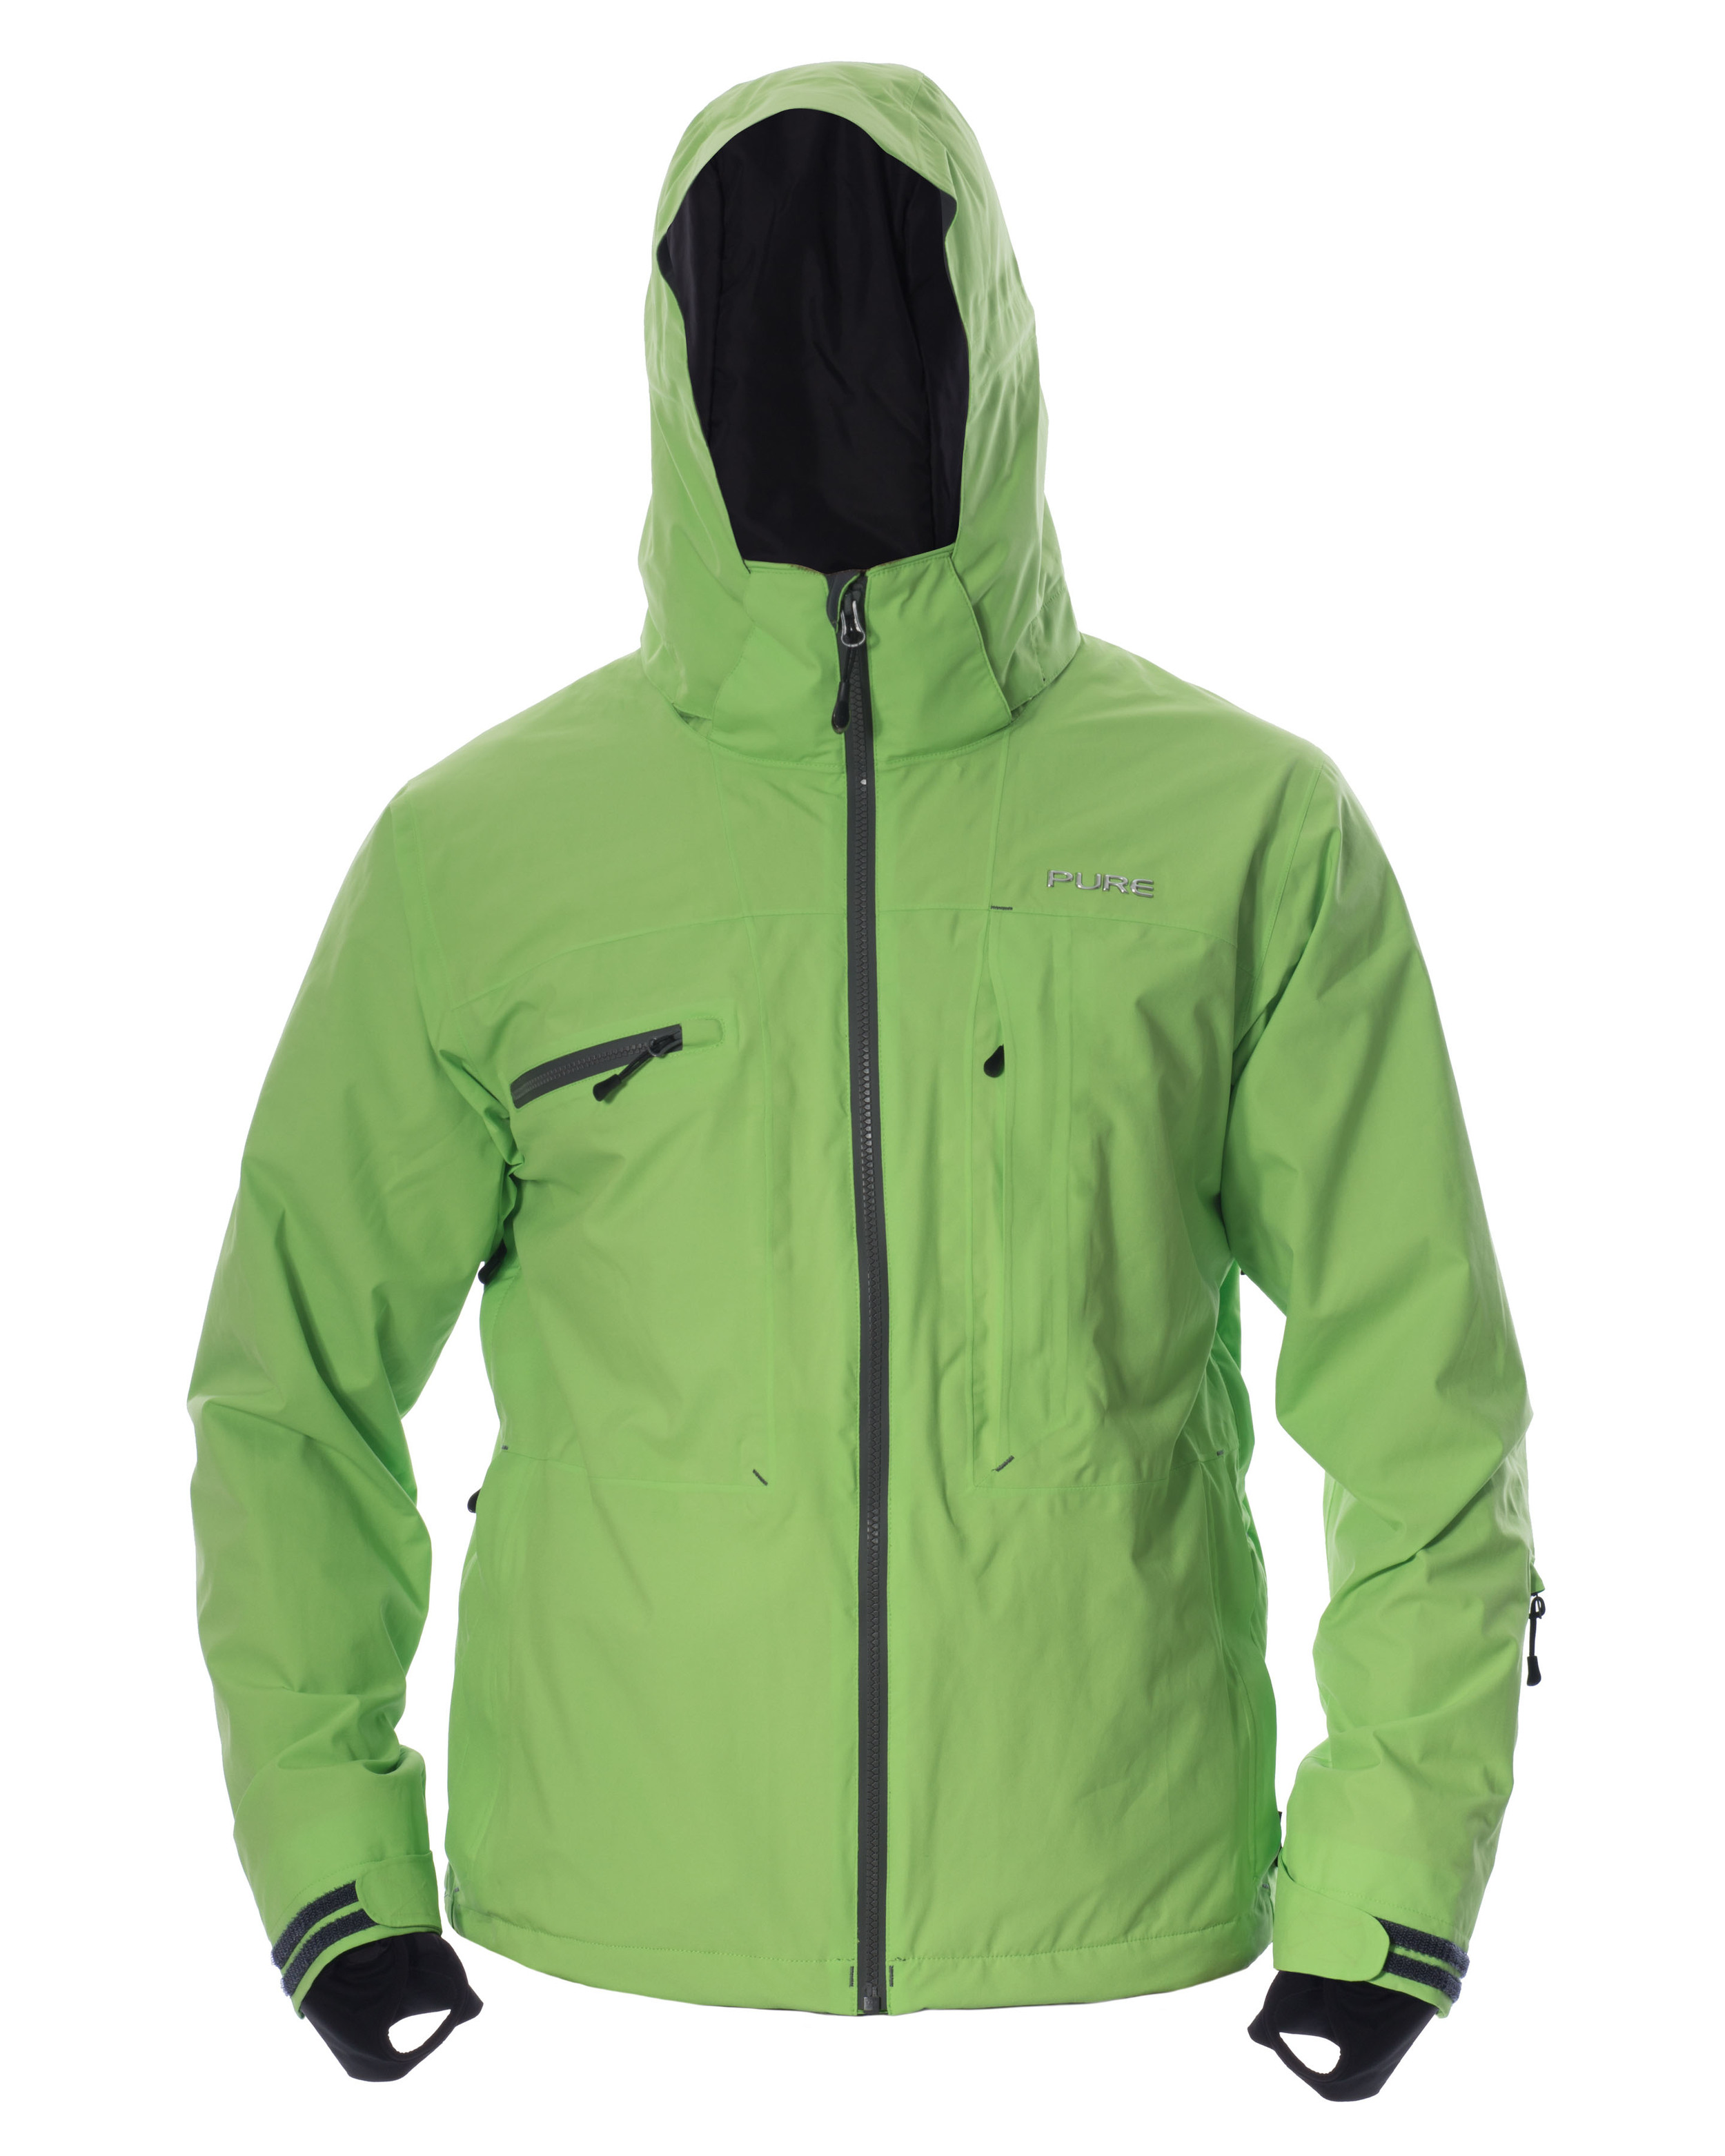 Kilimanjaro Men's Pure Mountain - Green